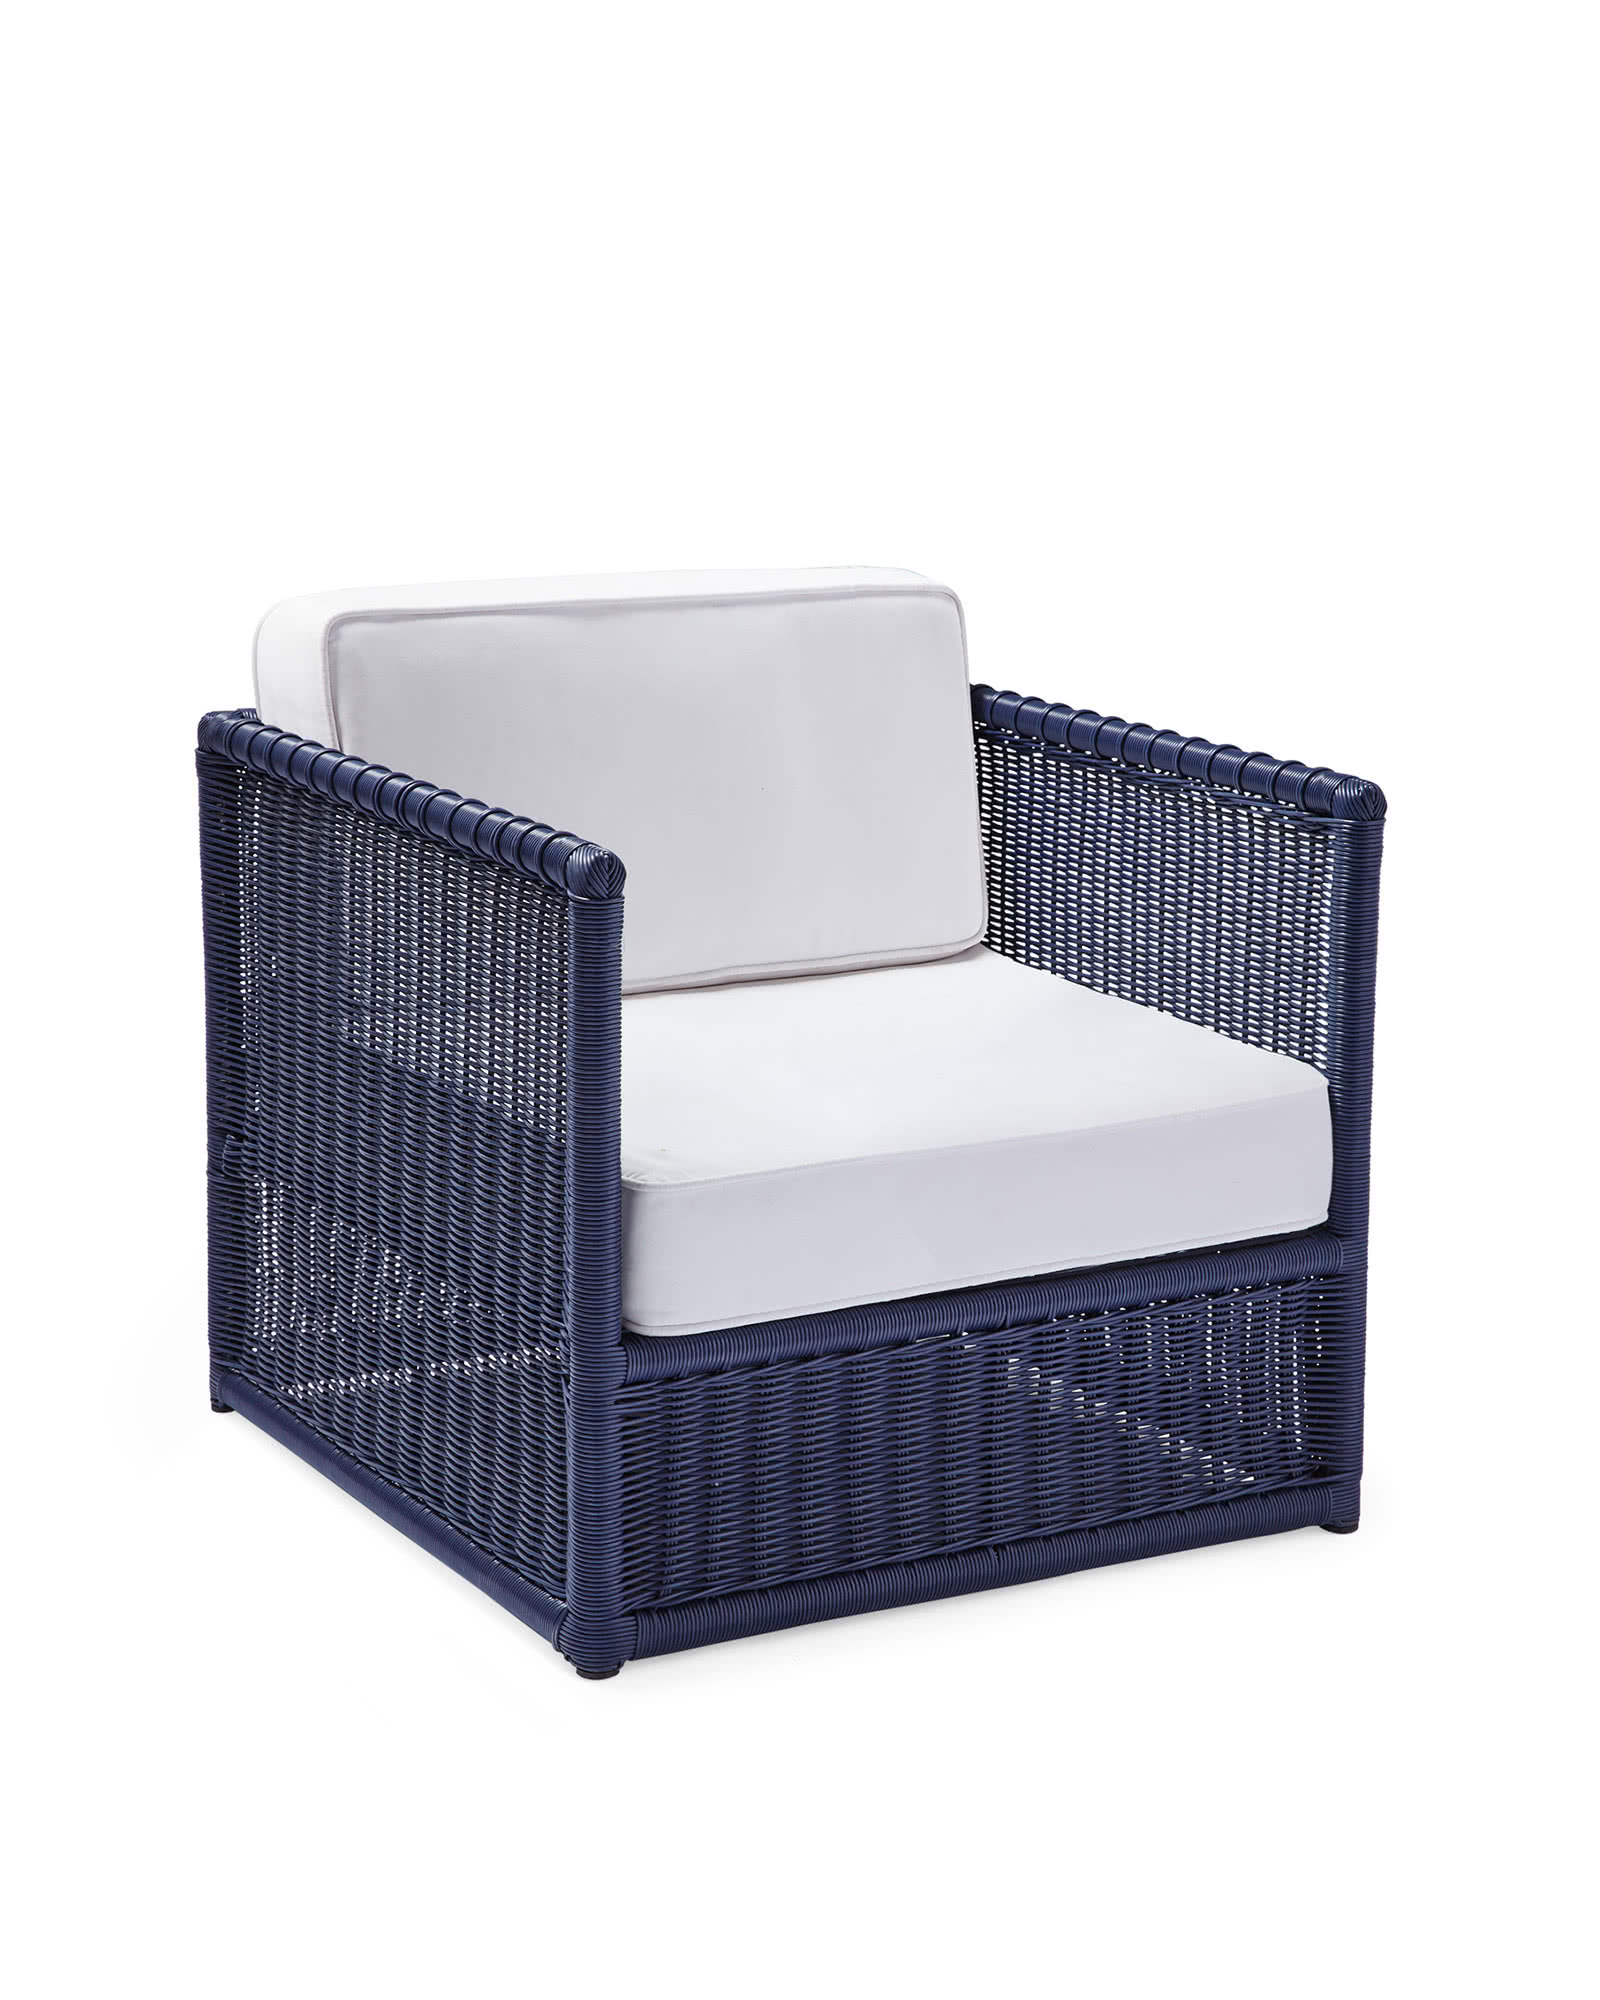 Pacifica Chair - Navy,